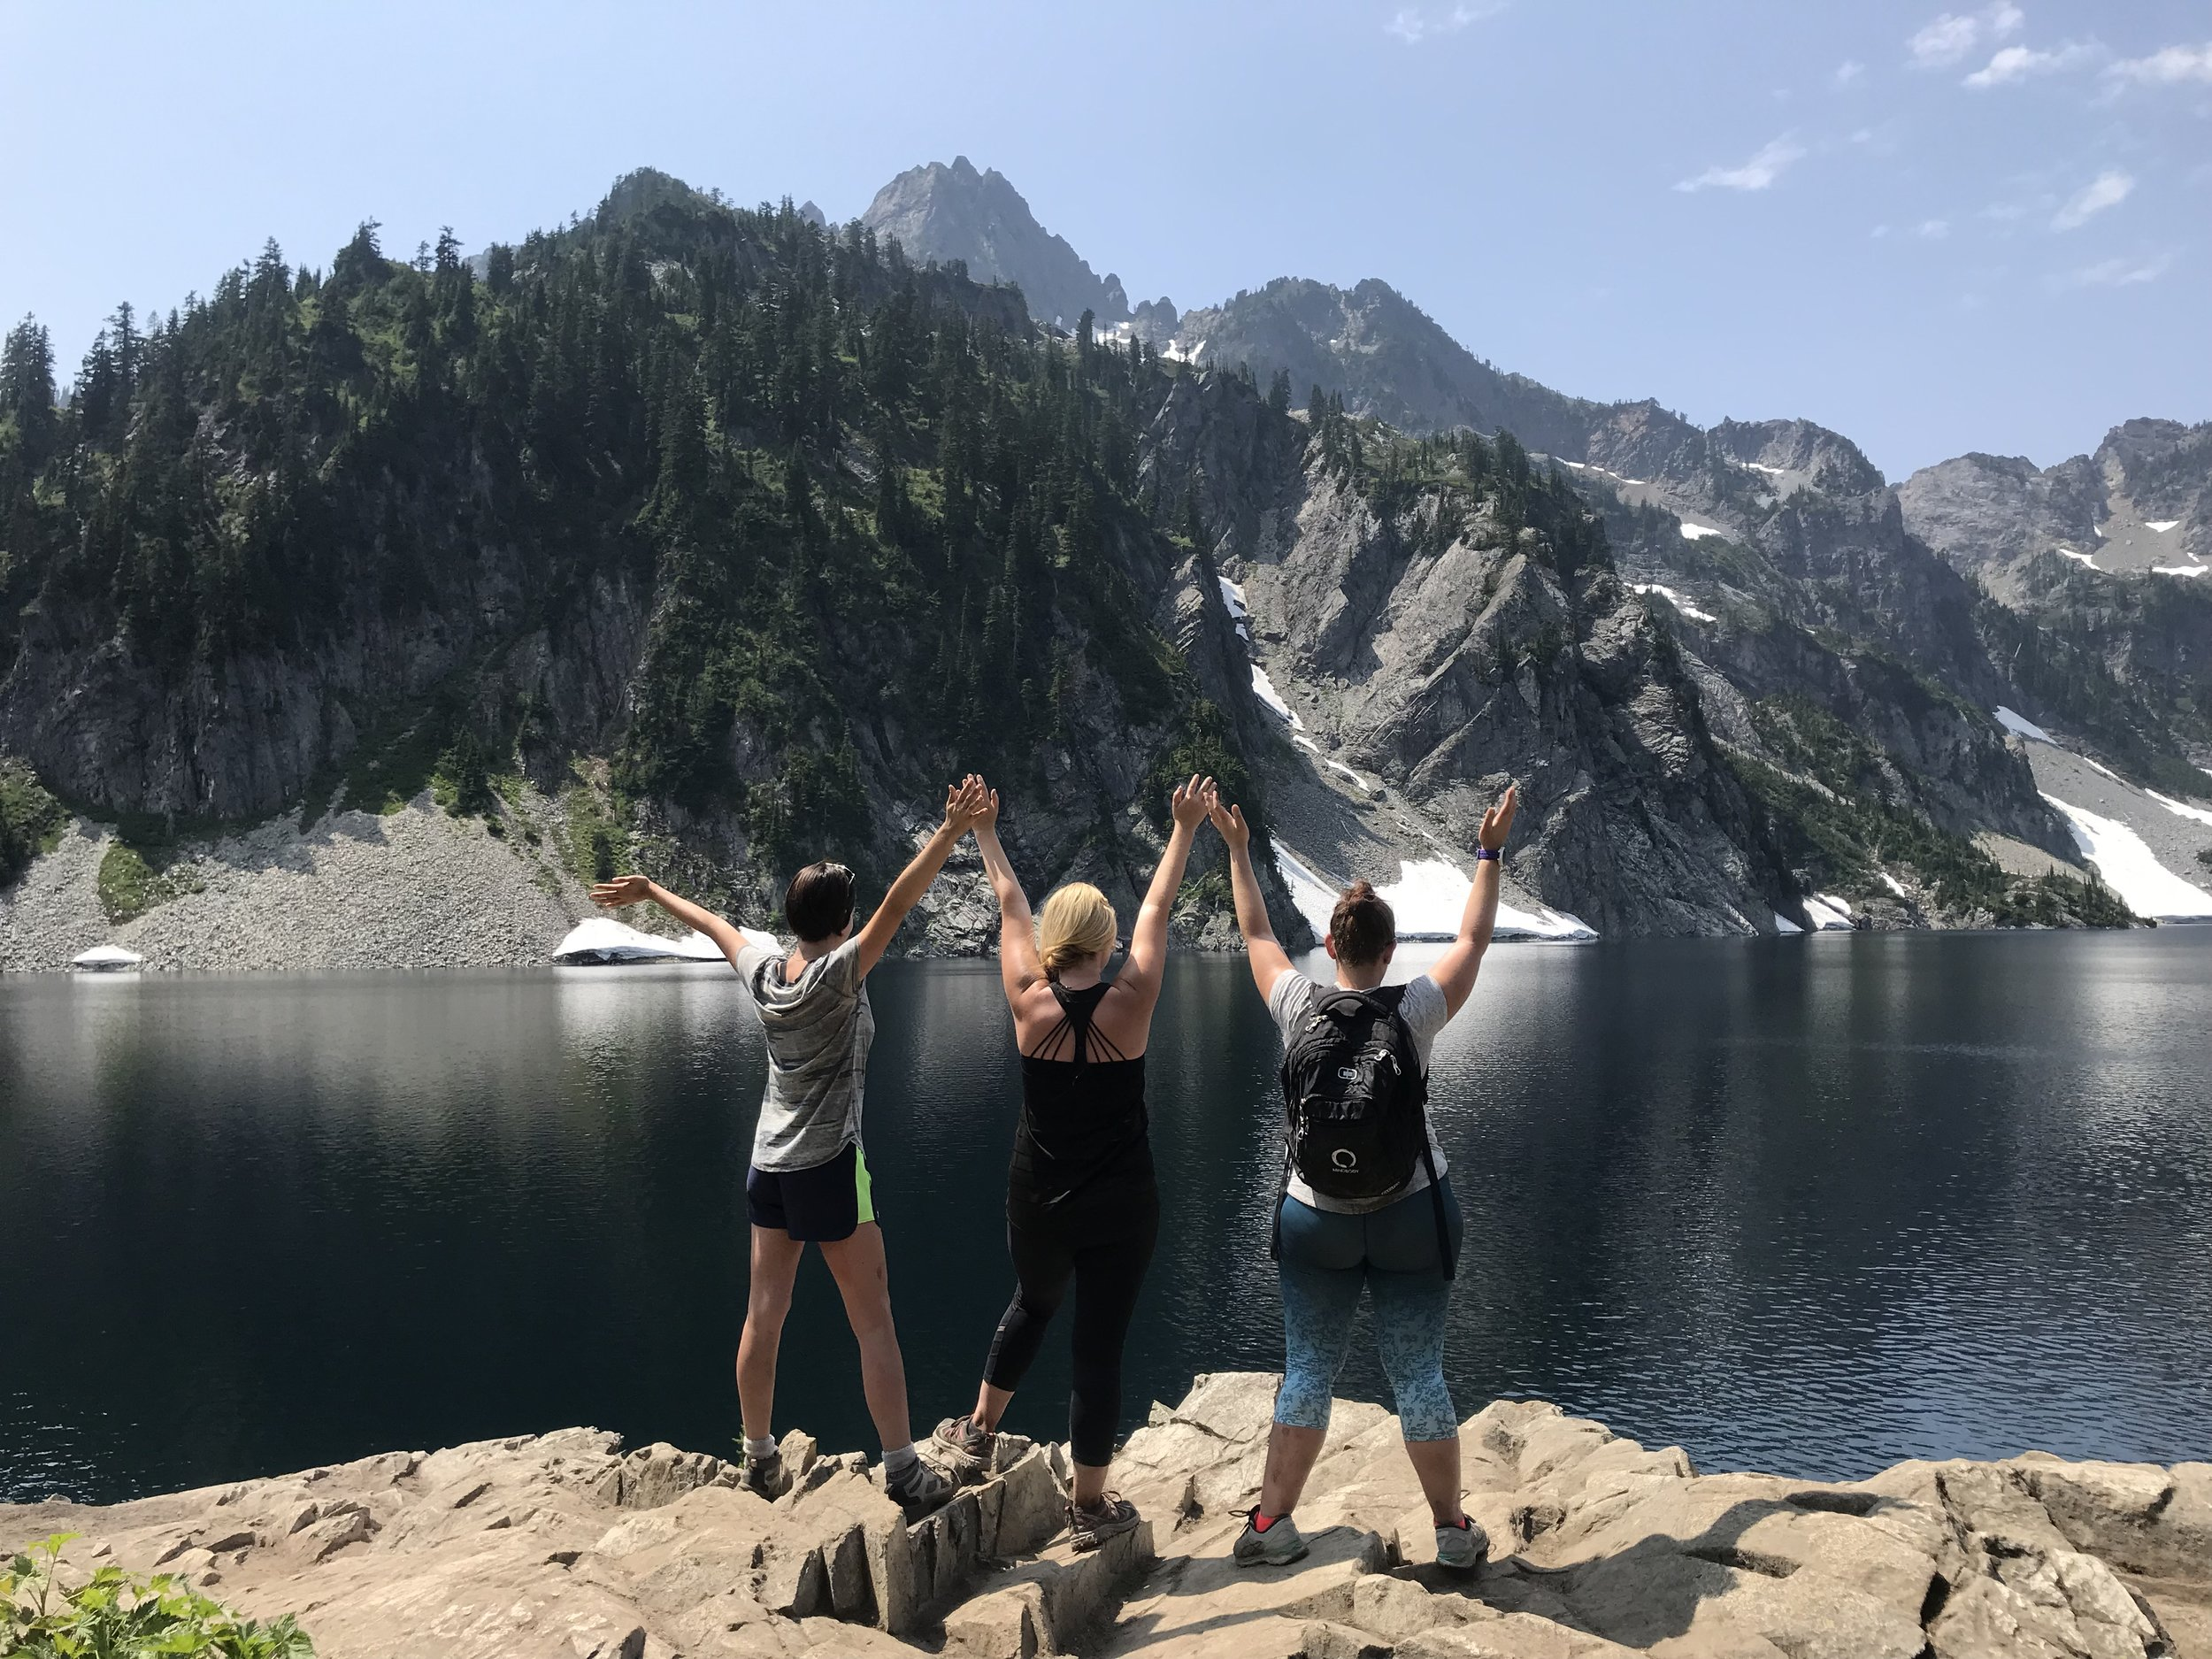 Anna Osgoodby Life + Design :: Life Lately :: 10 Highlights from the Summer of 2018